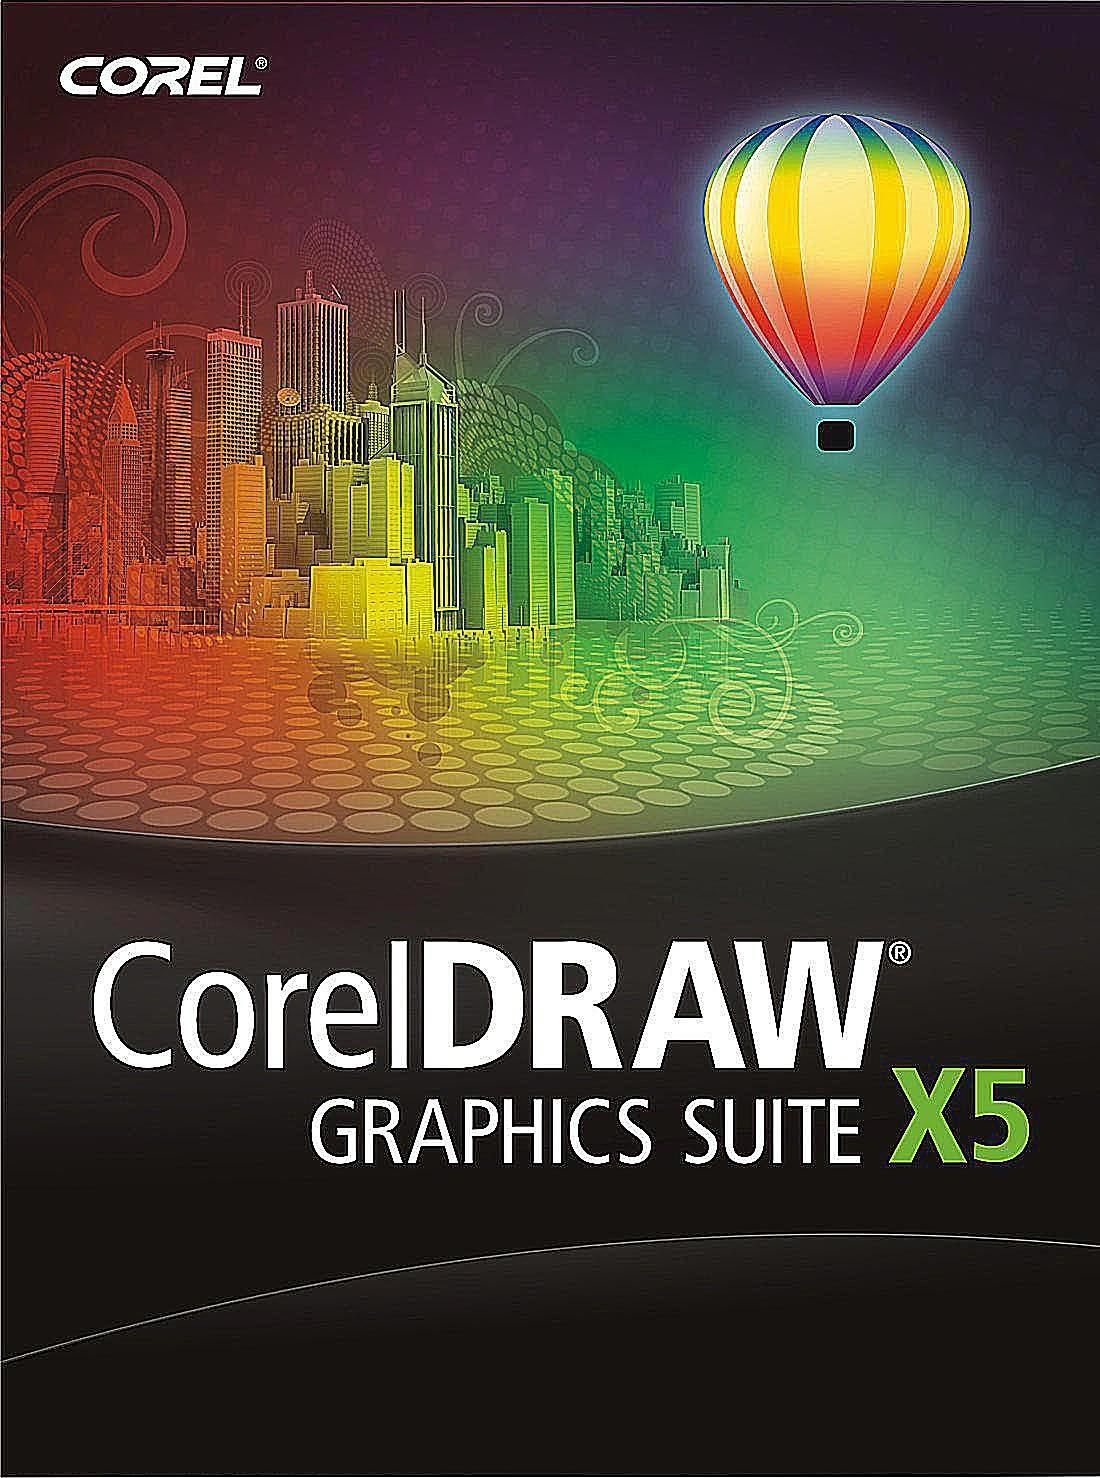 corel draw clipart viewer - Clipground